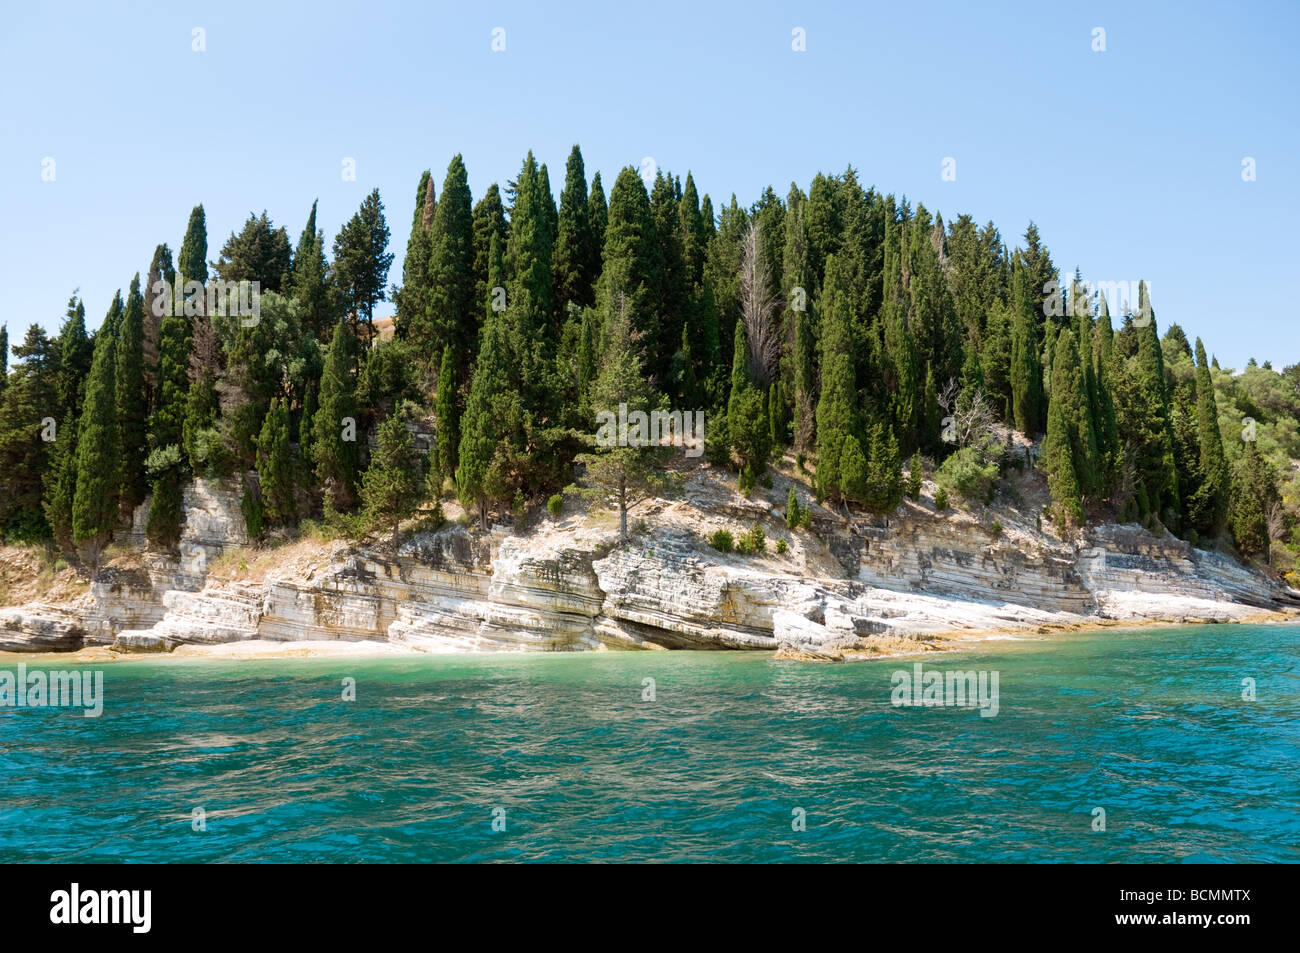 Cypress trees on the NE coast Corfu - Stock Image